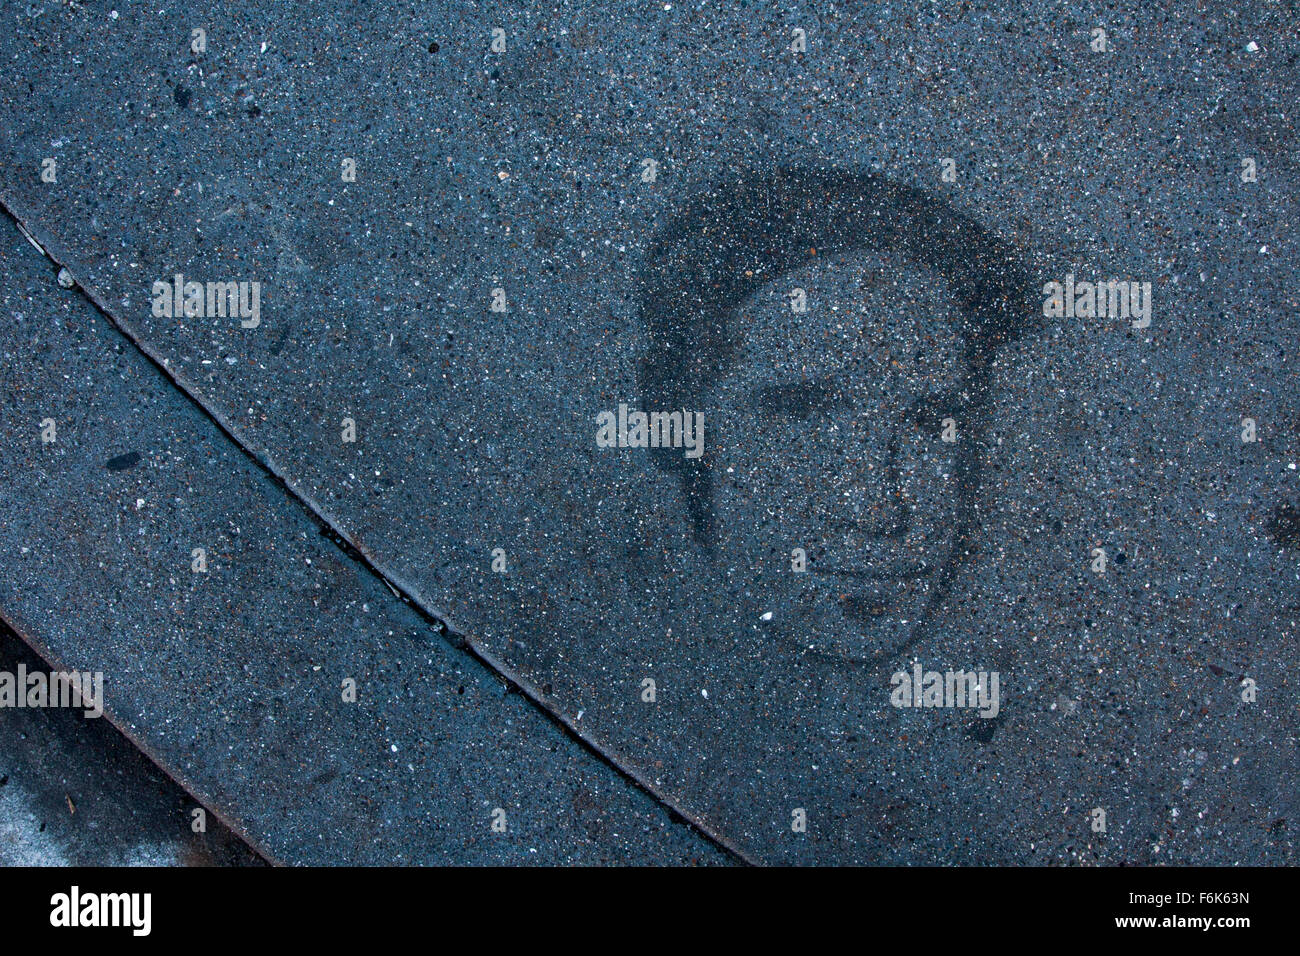 Stencil graffiti on the sidewalk in The Mission in San Francisco, California. - Stock Image